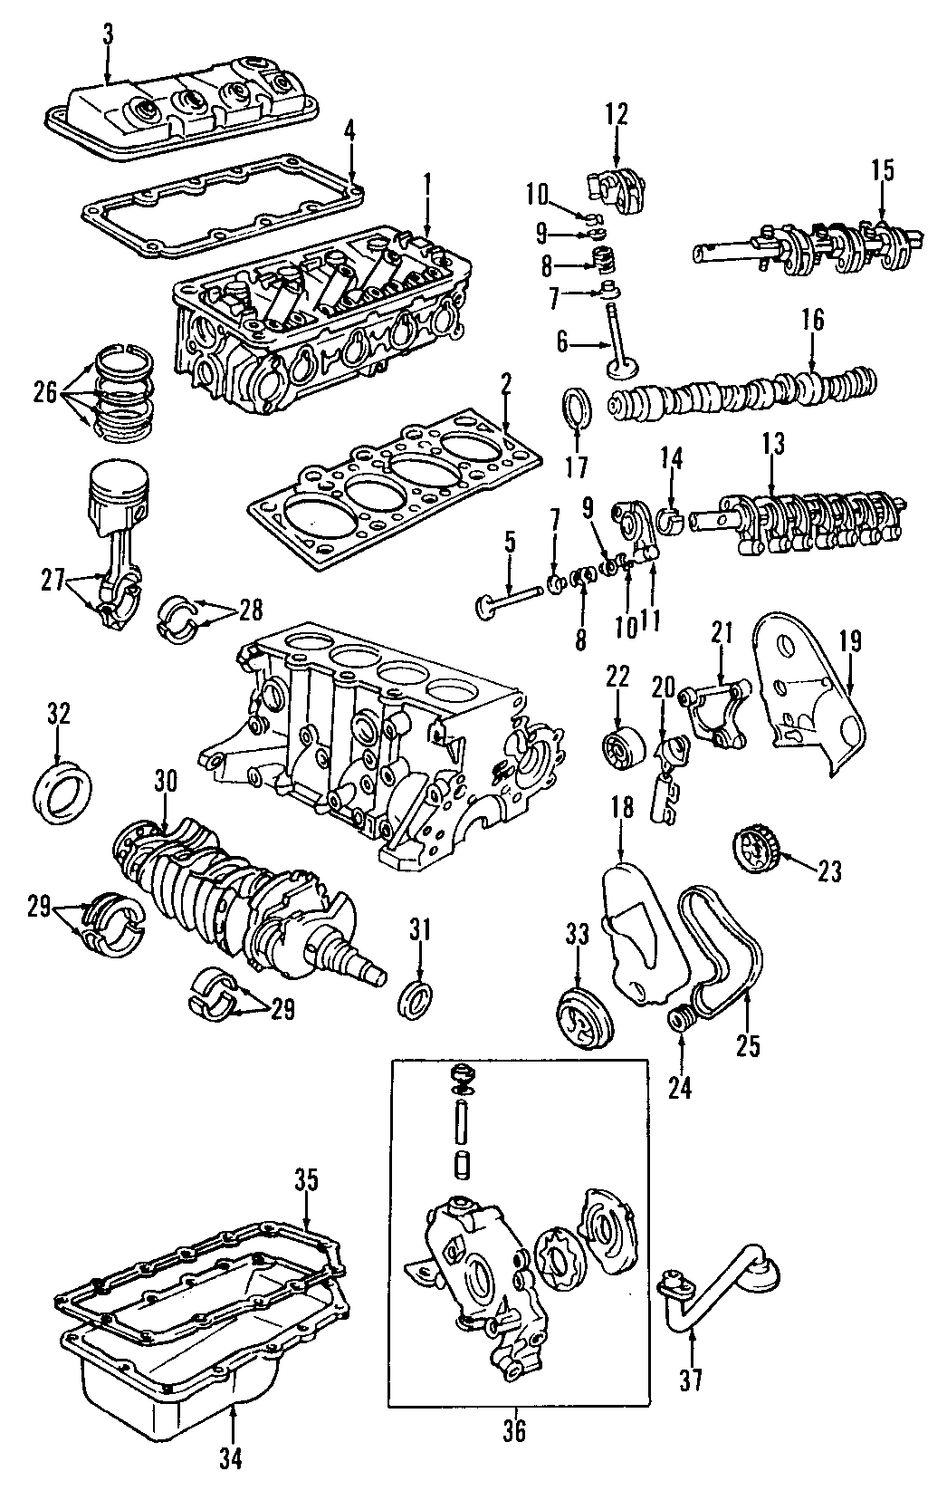 Honda Ct70h Trail 70h 1970 Ct70hk0 Usa Front Fork Schematic